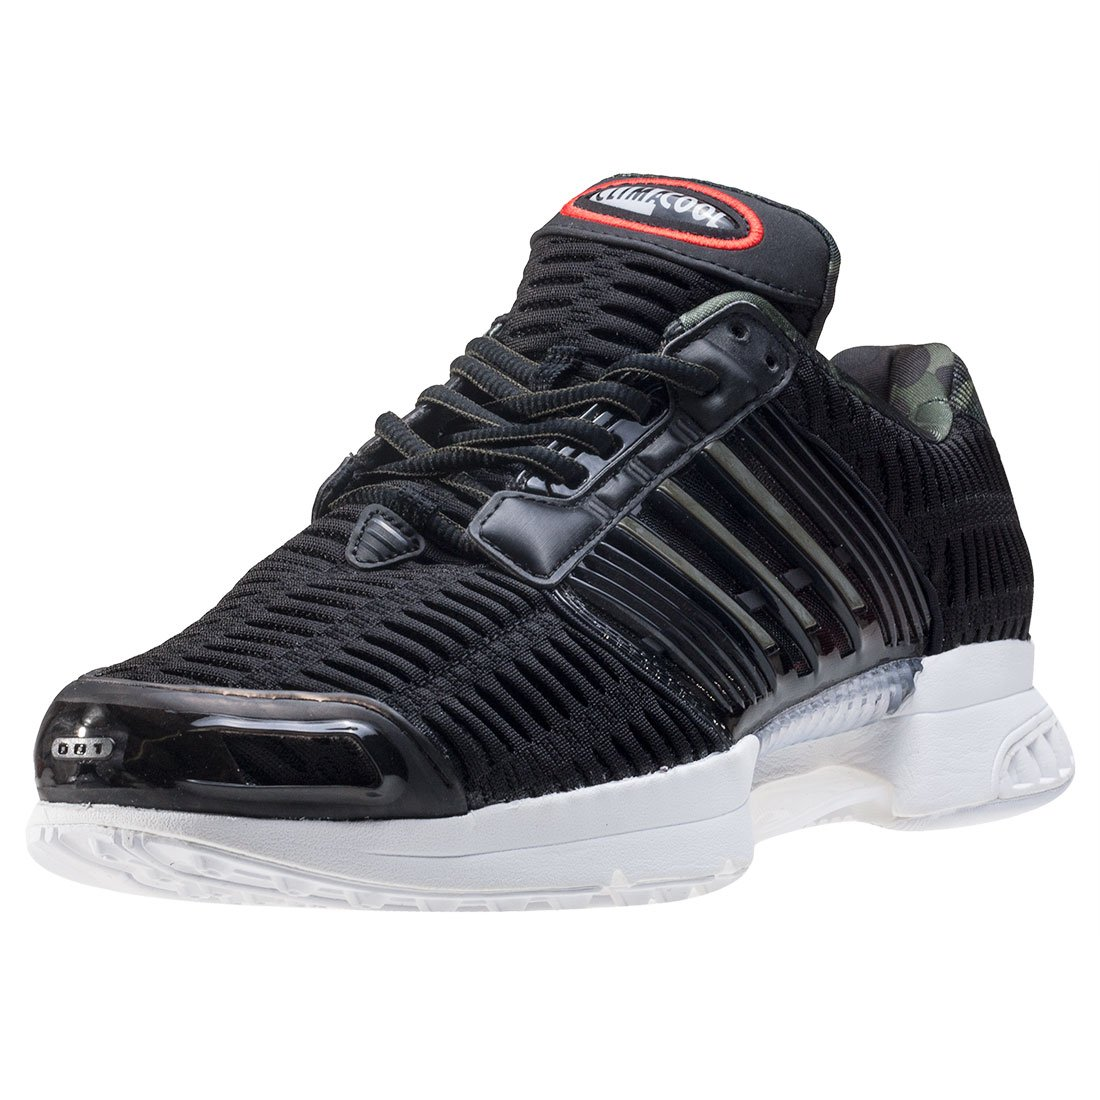 Core noir-night Cargo-footwear blanc (Ba7177) adidas Climacool 1 baskets 40 EU